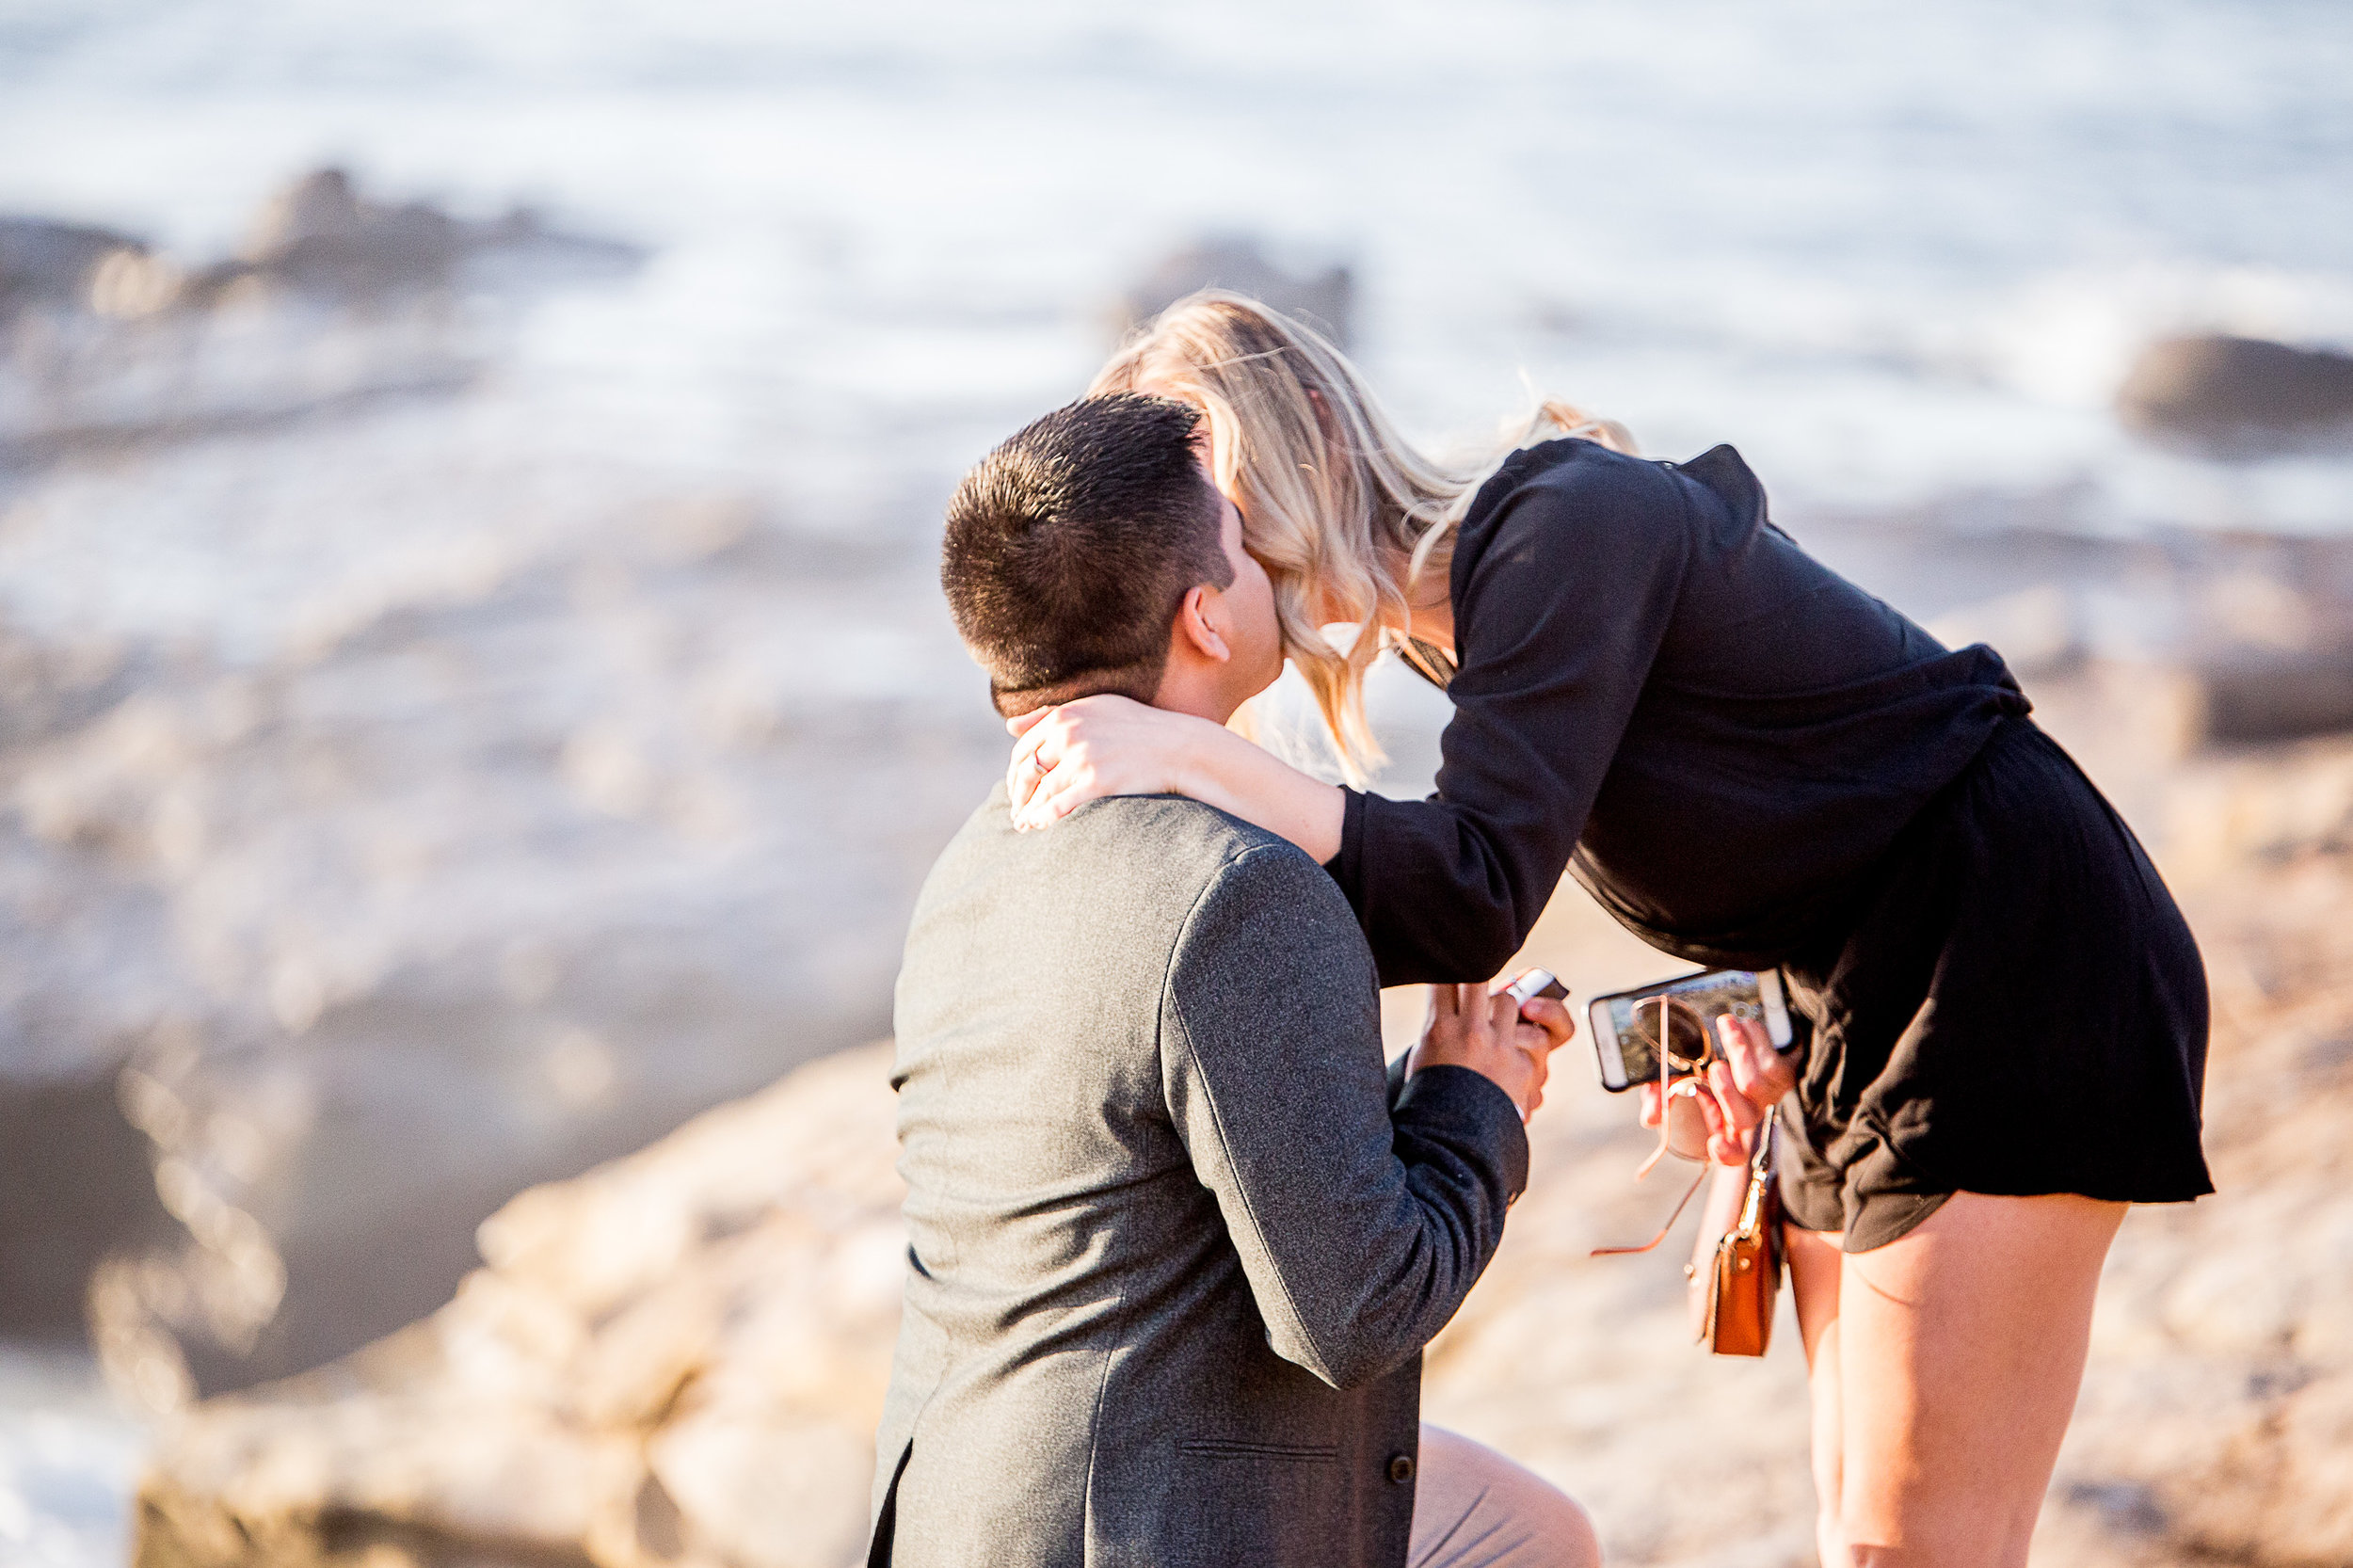 La-jolla-cove-proposal-chicago-natives-san-diego-sunset-golden-hour-love-story-engaged-alligator-head (18 of 158).jpg